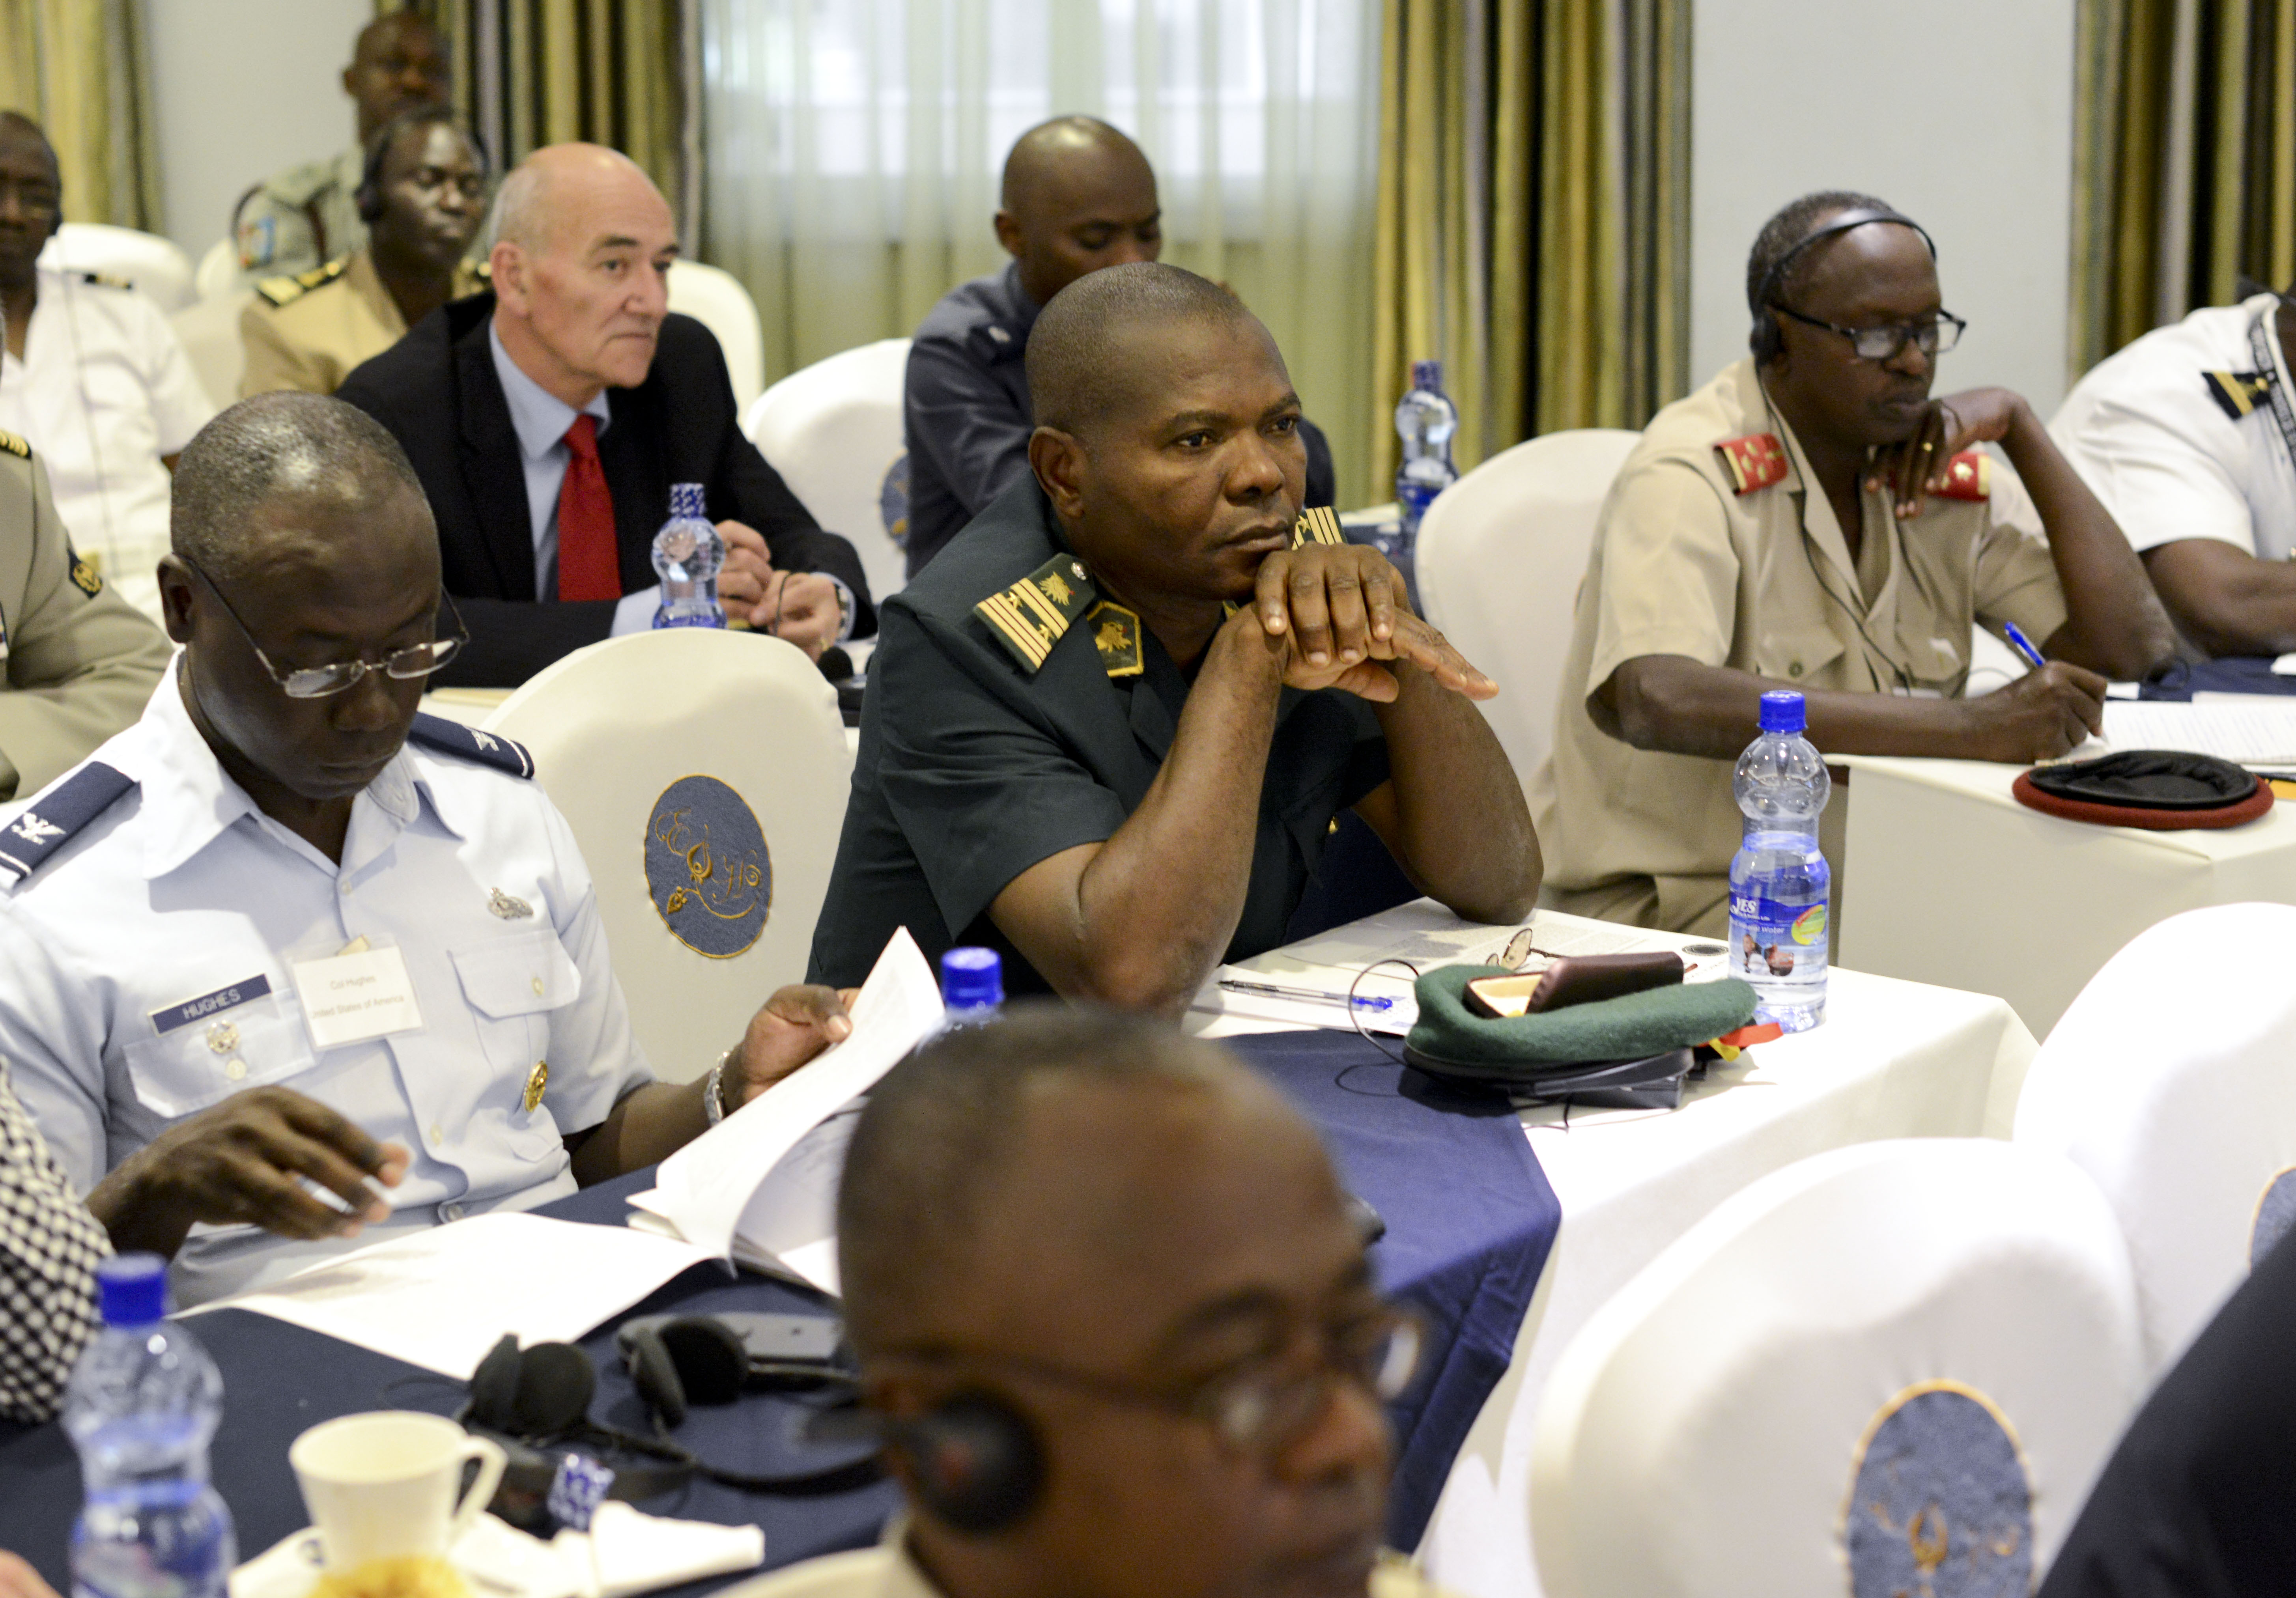 Participants listen to a panel discussion during the Africa Logistics Forum in Addis Ababa, Ethiopia, June 23, 2015. Logisticians from 36 African nations and international partners attended the forum.